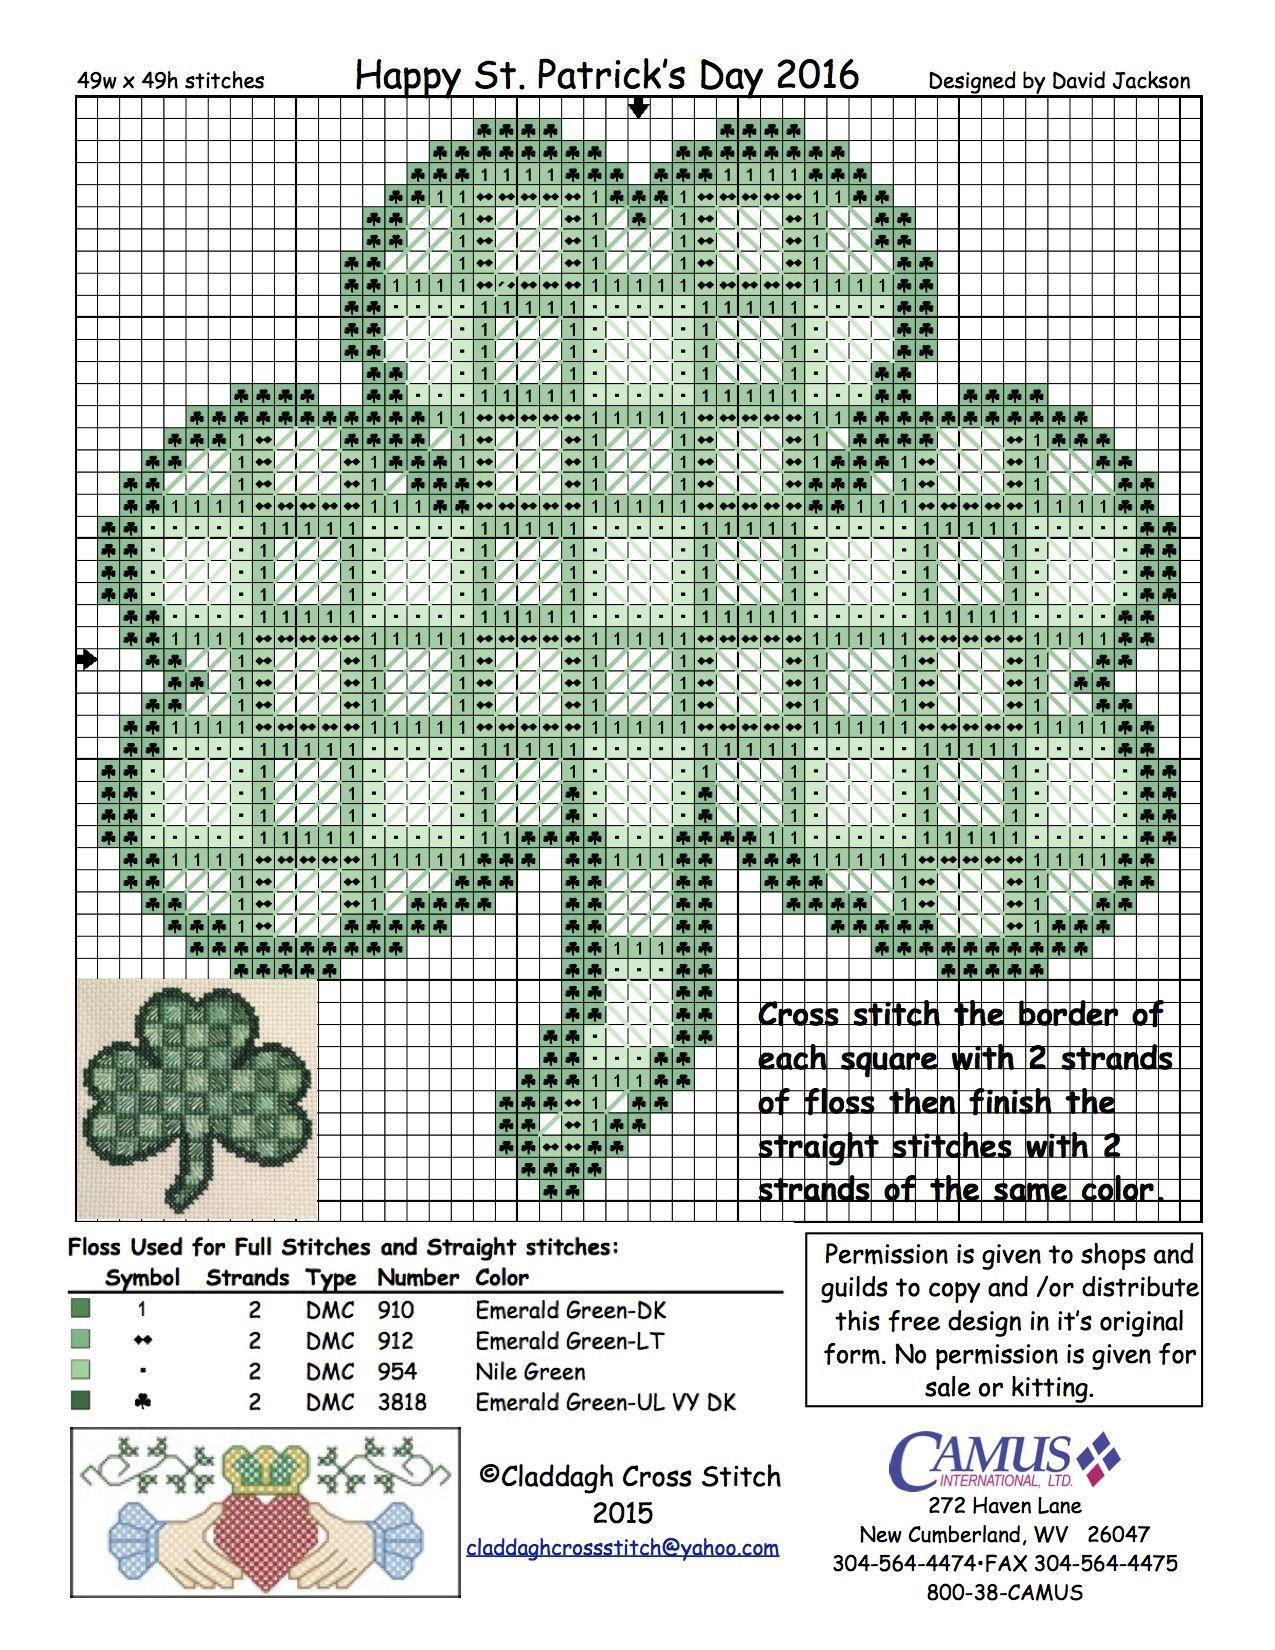 Happy St Patrick\'s Day 2016. Permission is given to pin. | Stitching ...